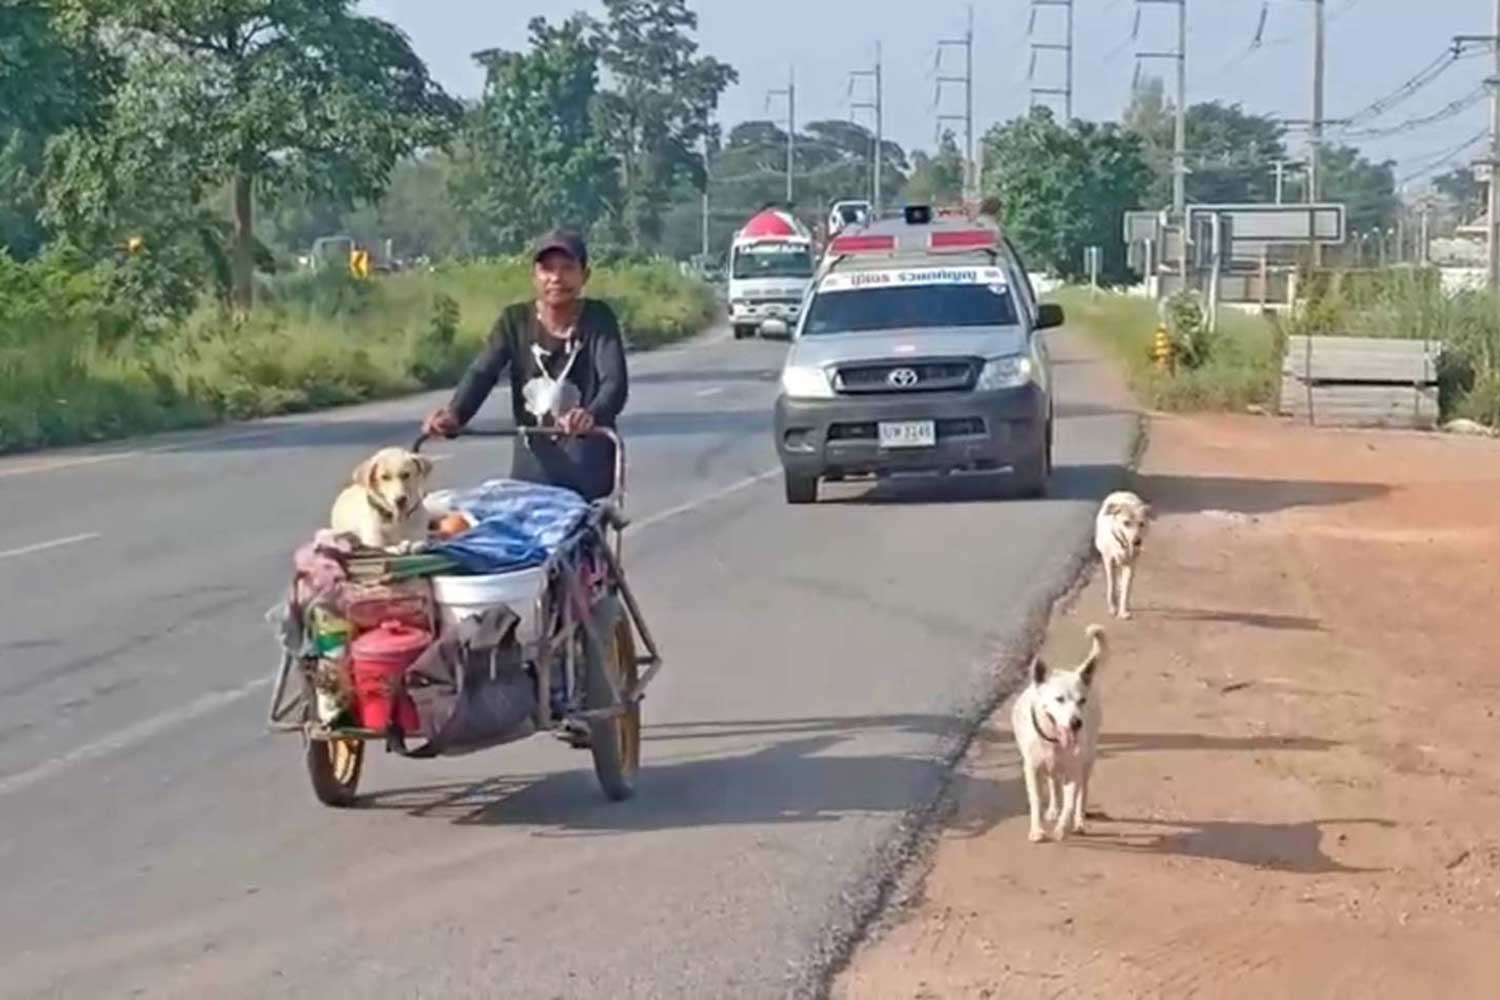 Sakchai Suphanthamat, 40, of Udon Thani, pushes his two-wheel cart with an urn containing the cremated ashes and bones of his wife, as he and his three dogs travel through Prachin Buri province on Saturday. (Photo by Manit Sanubboon)